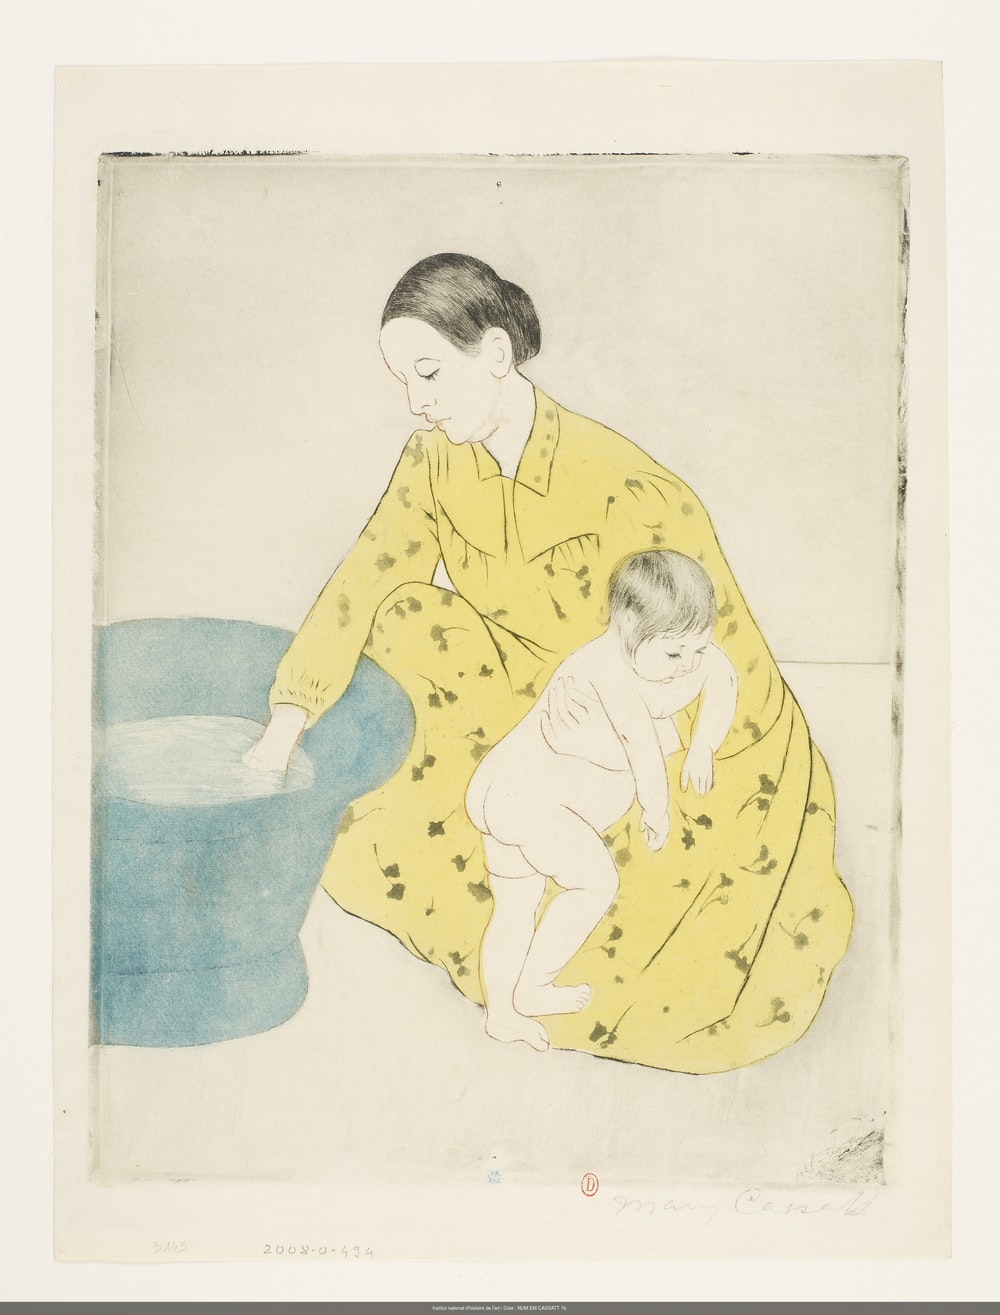 man in blue long sleeve shirt and blue pants sitting on blue textile drawing